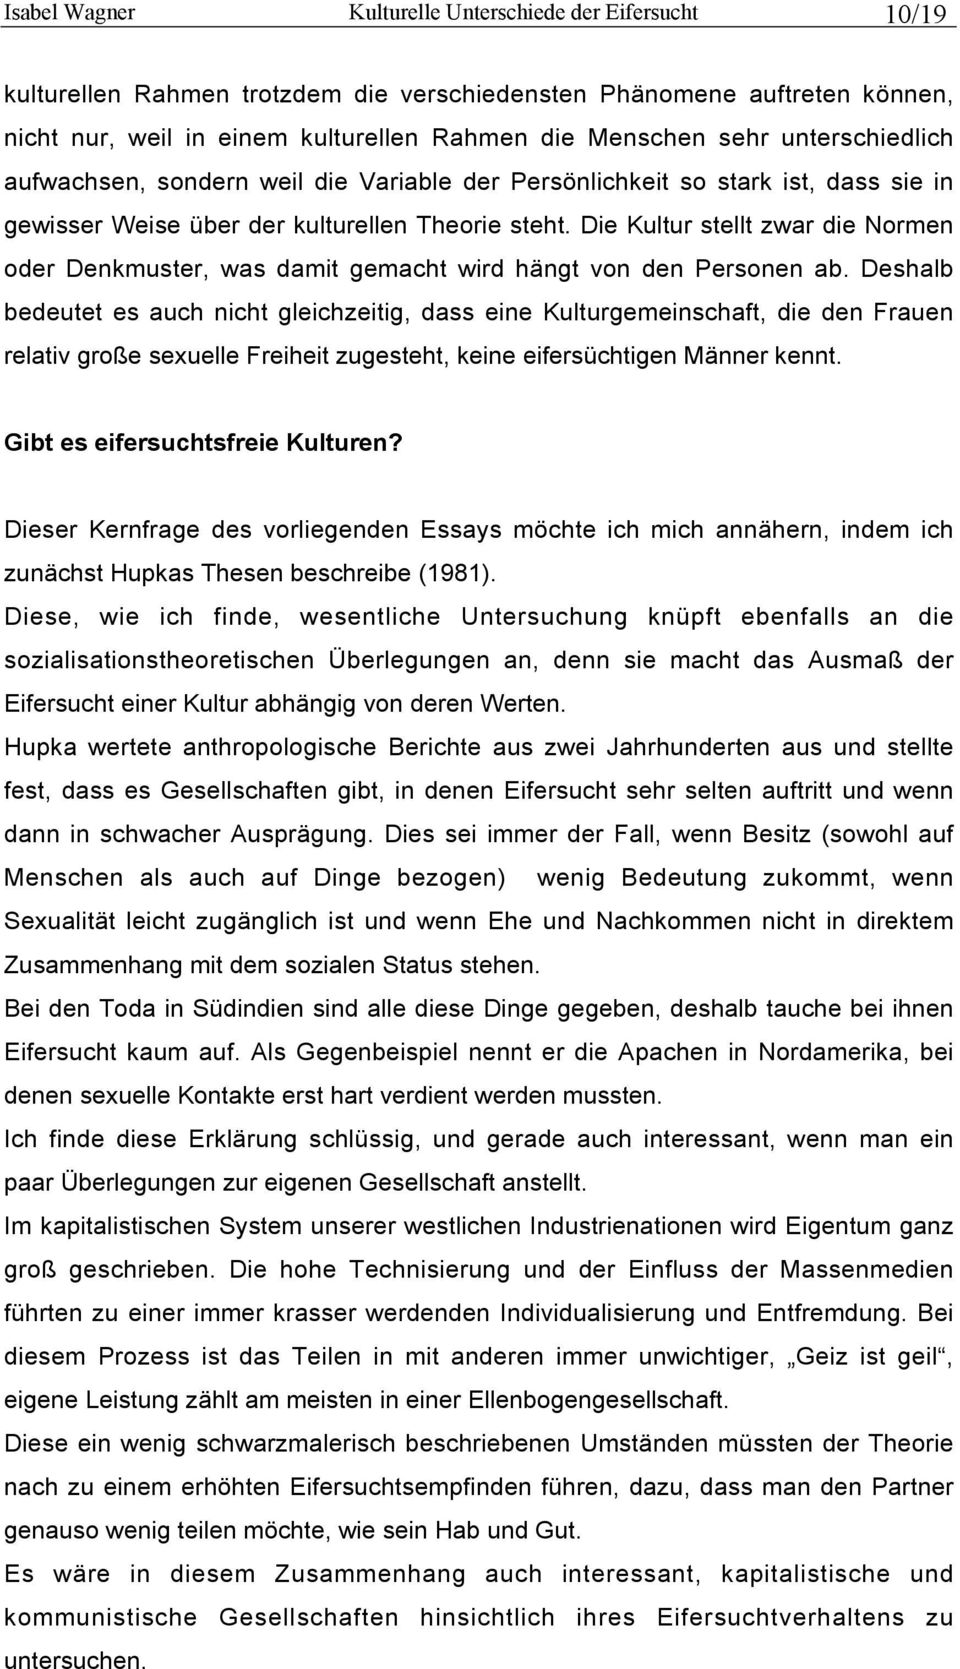 your place Partnersuche niedersachsen apologise, but, opinion